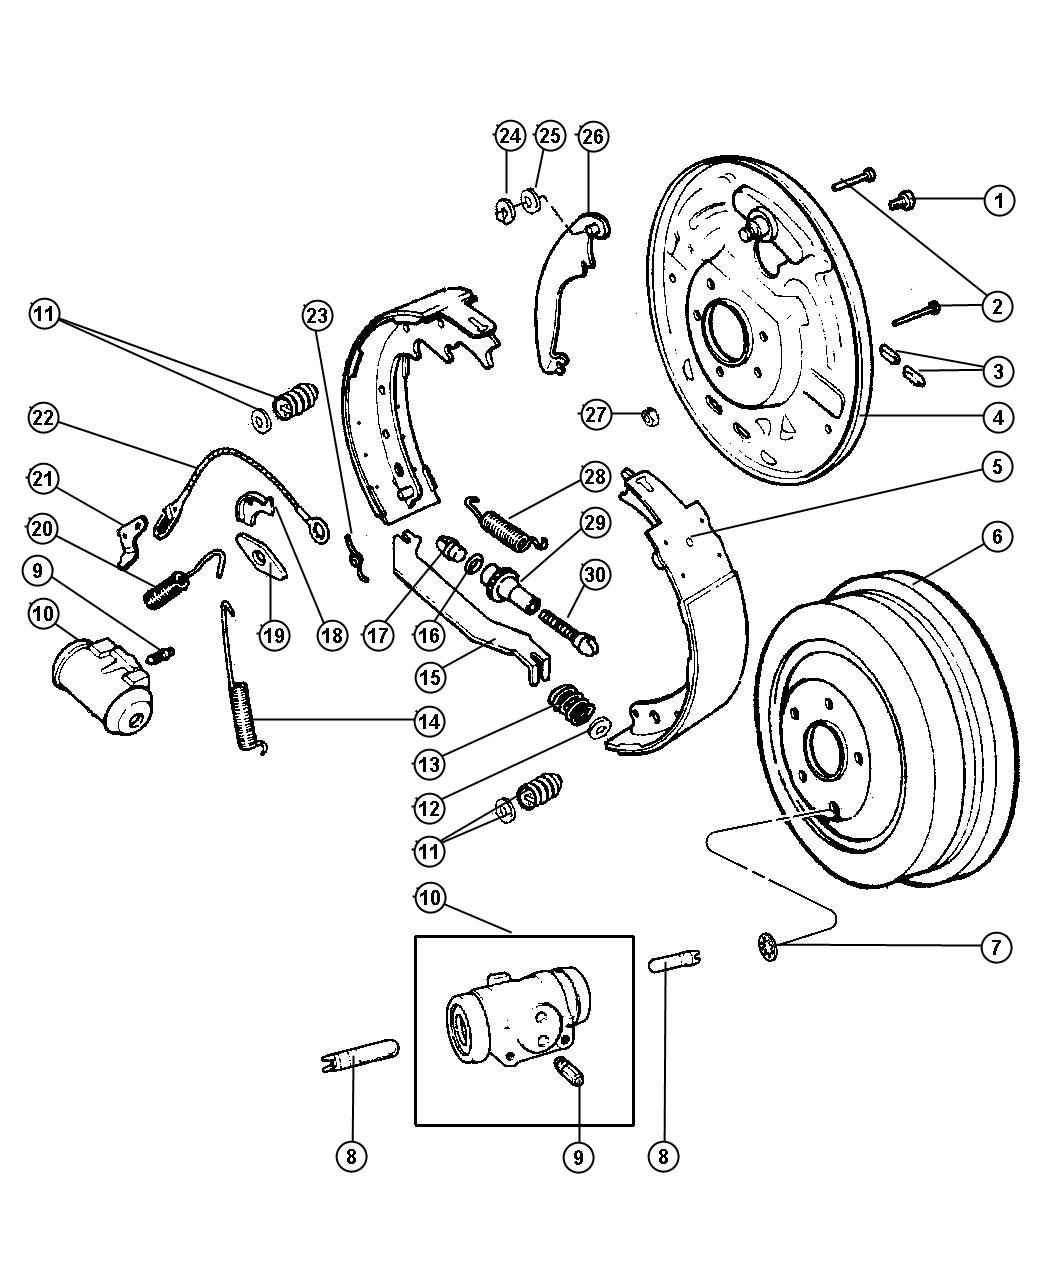 service manual 2002 jeep liberty brake replacement system 2008 Jeep Grand  Cherokee Wiring Diagram